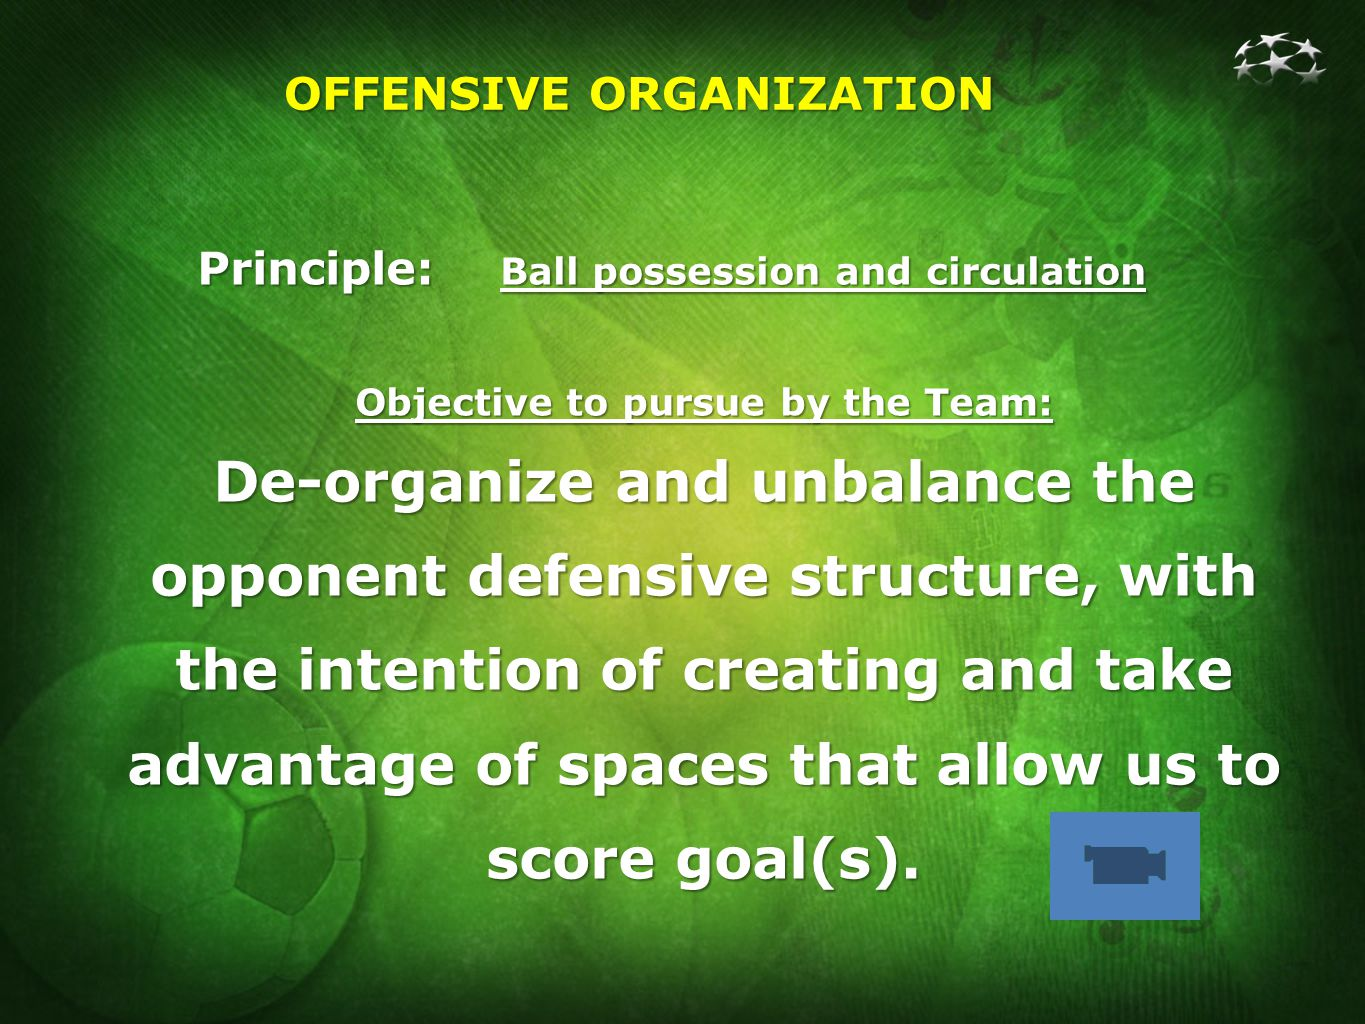 OFFENSIVE ORGANIZATION Principle: Ball possession and circulation Objective to pursue by the Team: De-organize and unbalance the opponent defensive structure, with the intention of creating and take advantage of spaces that allow us to score goal(s).